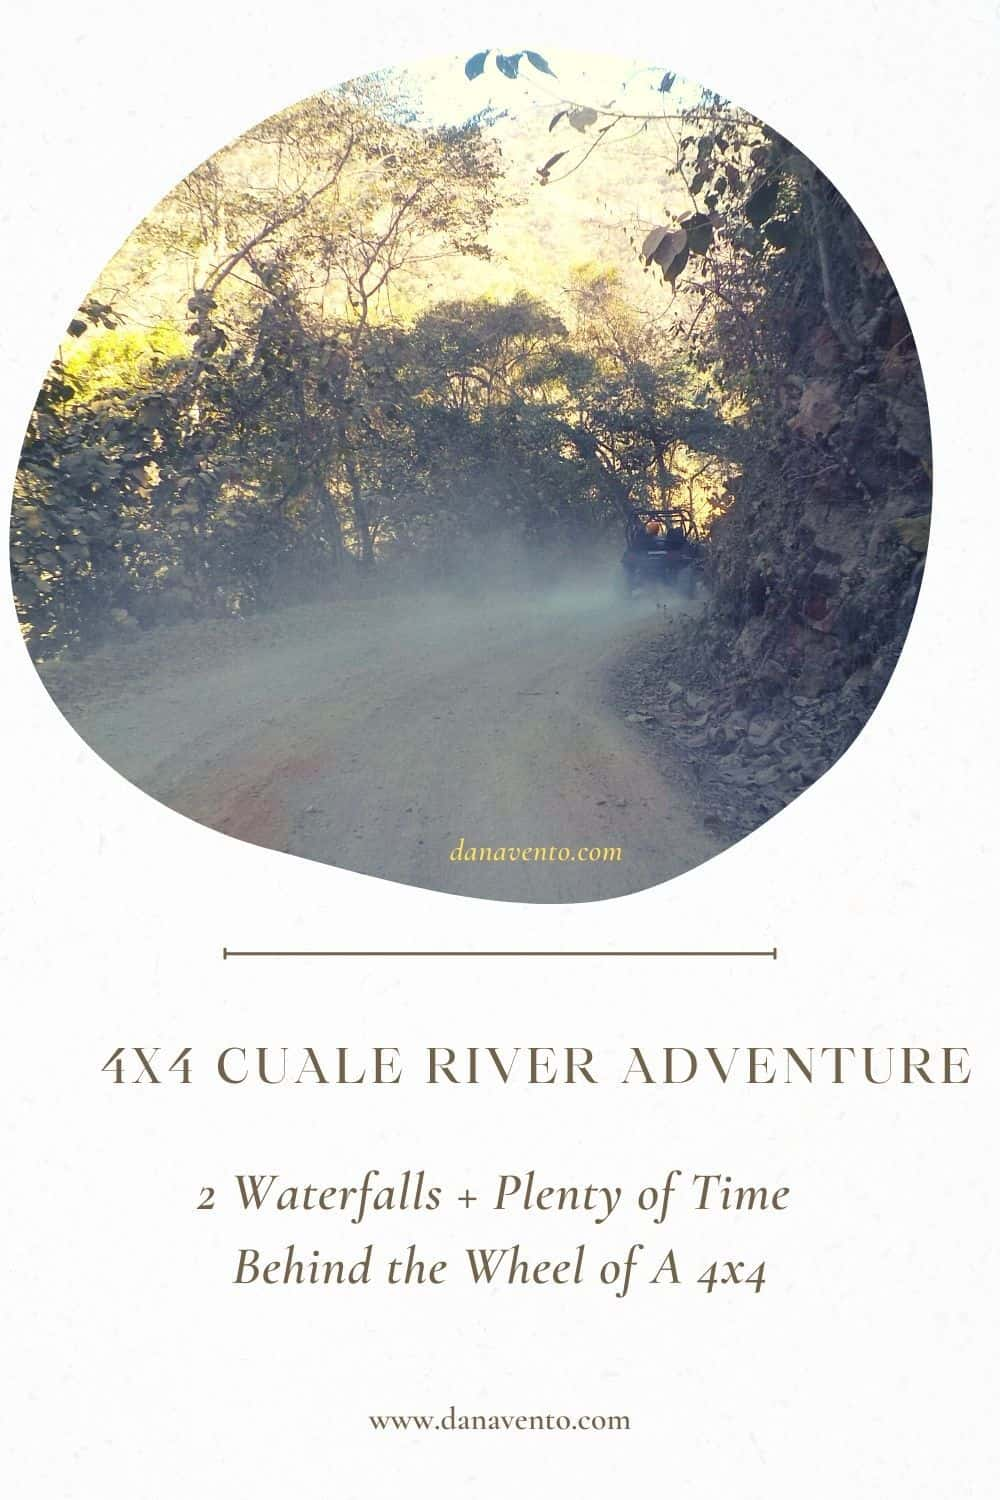 4x4 Cuale River Adventure up Sierra Madres